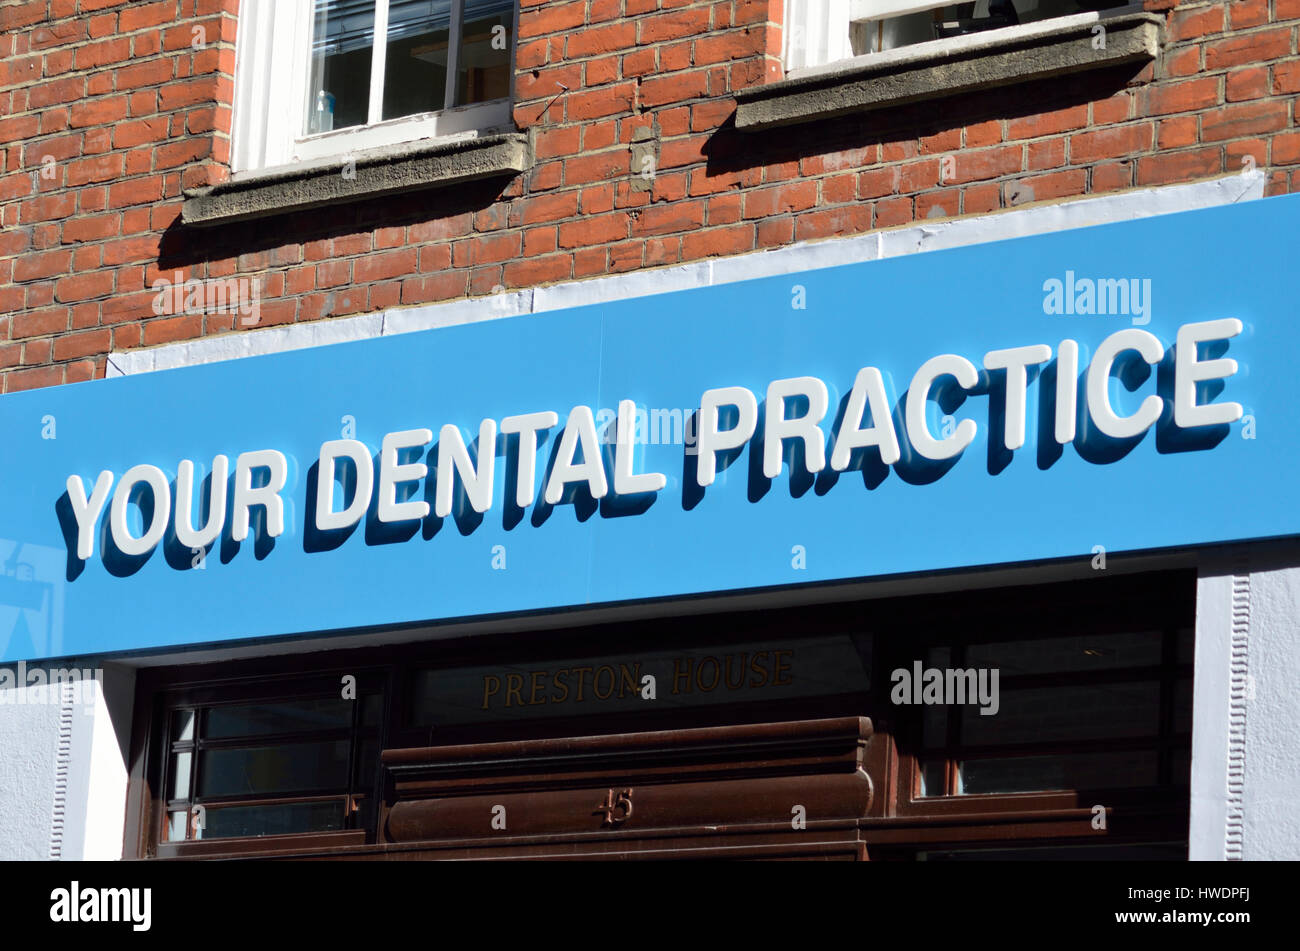 Your Dental Practice Sign Outside A Dentist Stock Photo